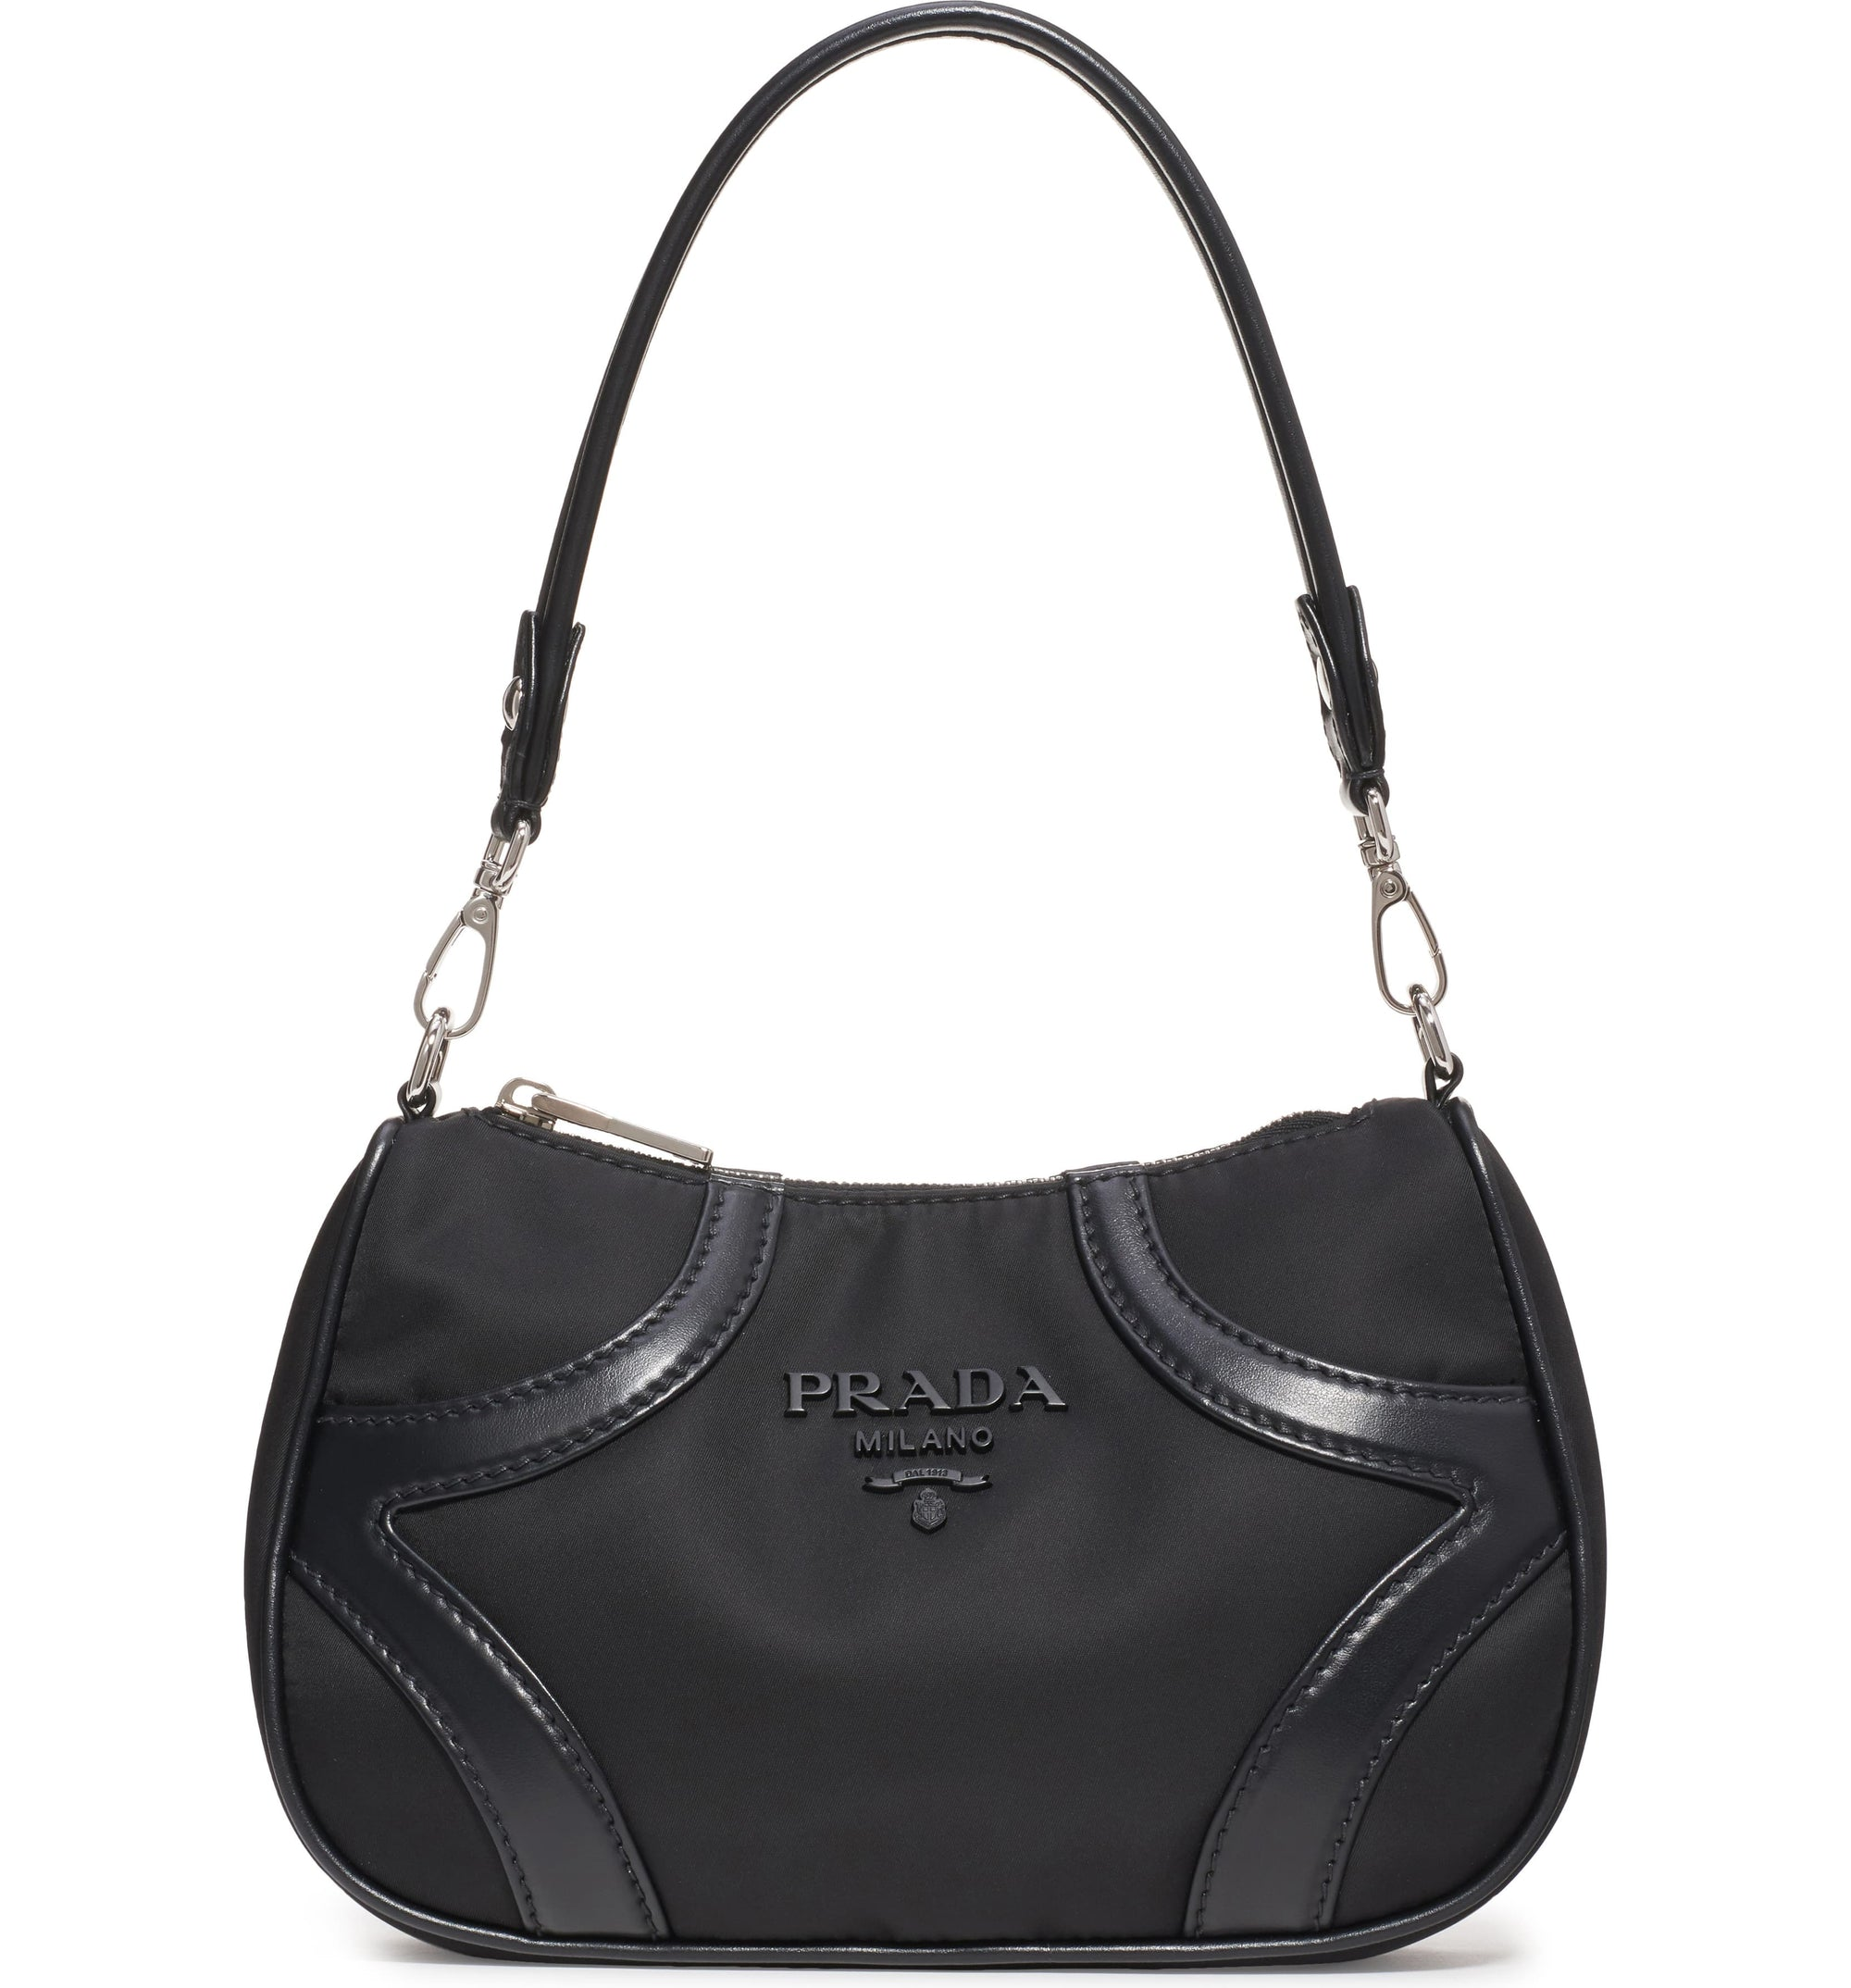 Prada Nylon and Leather Shoulder Bag